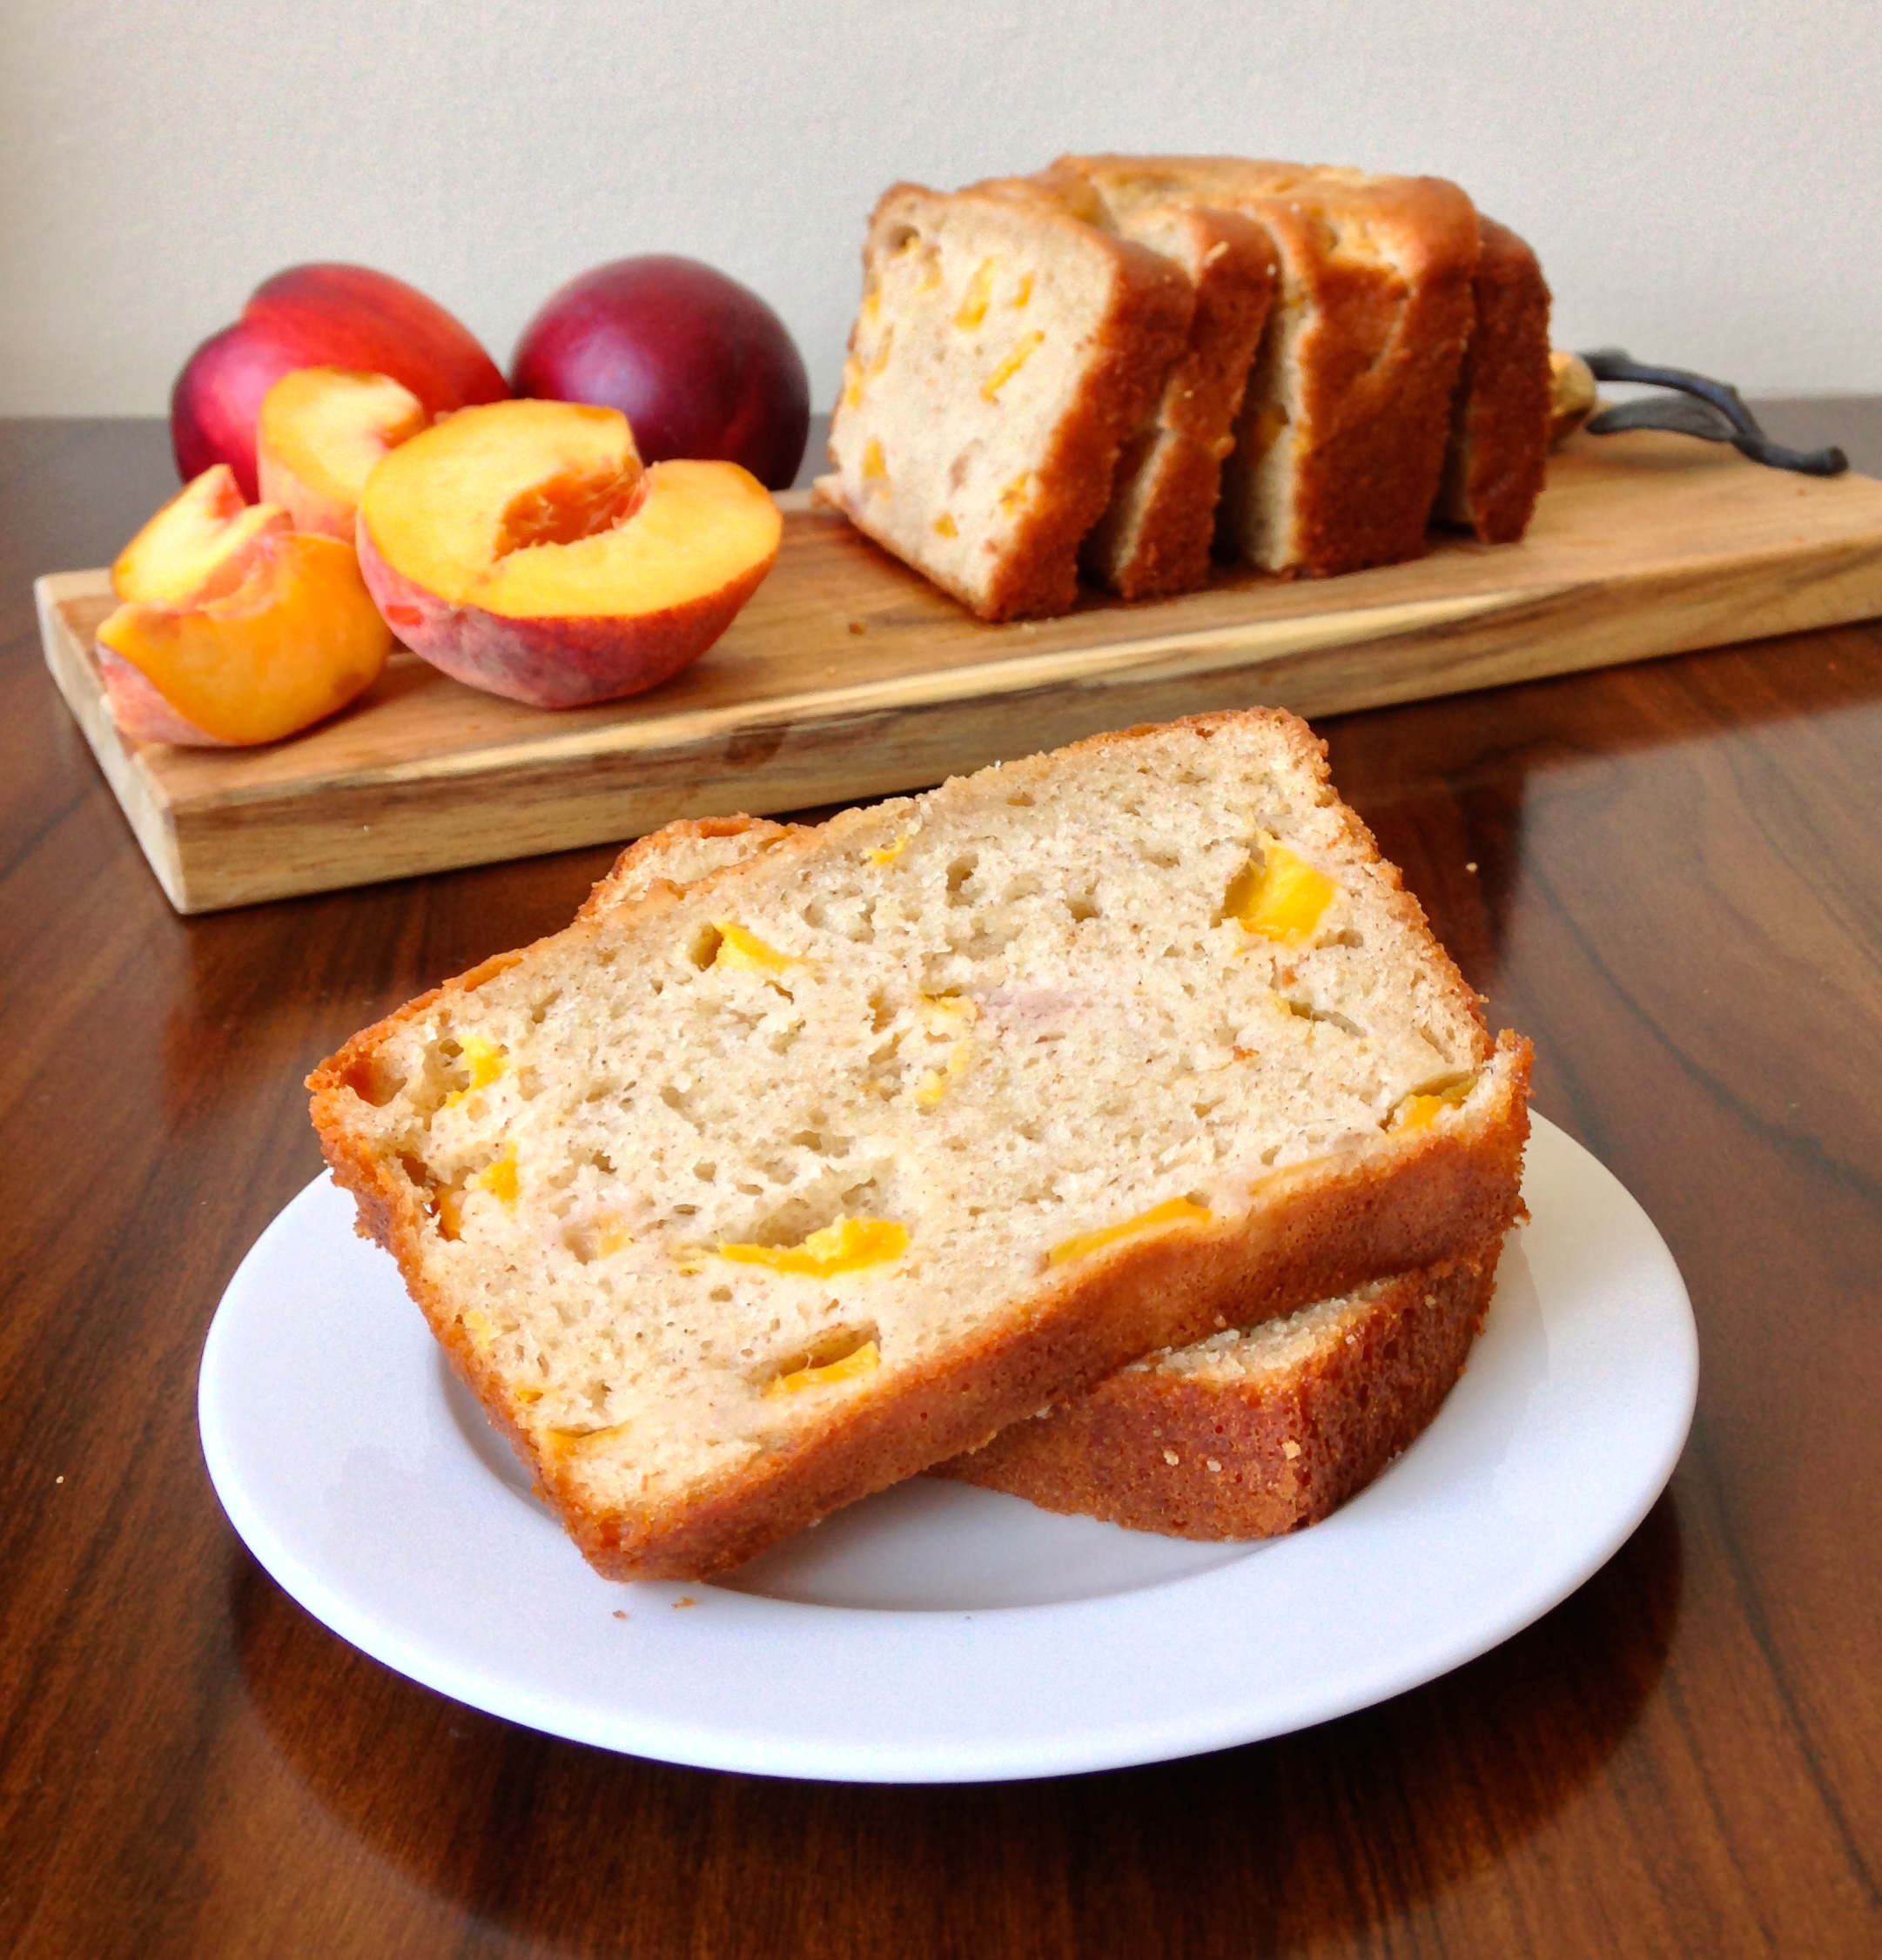 Peach Yogurt Bread with Cinnamon | chezcateylou.com